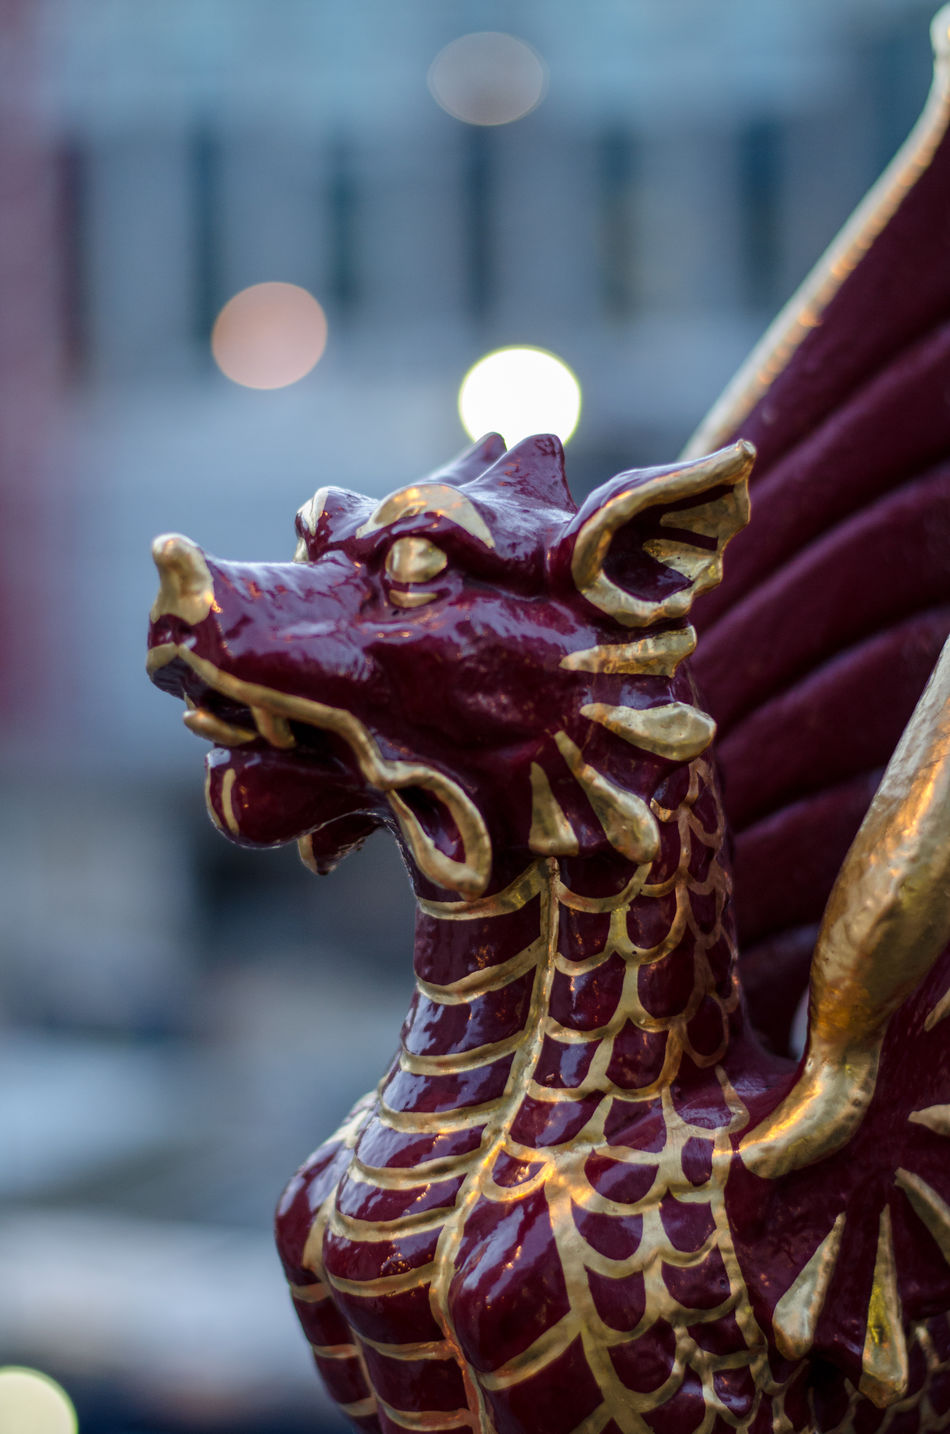 Art Art And Craft City Of London Close-up Creativity Dragon Focus On Foreground Holborn Viaduct London Mythology No People Statue